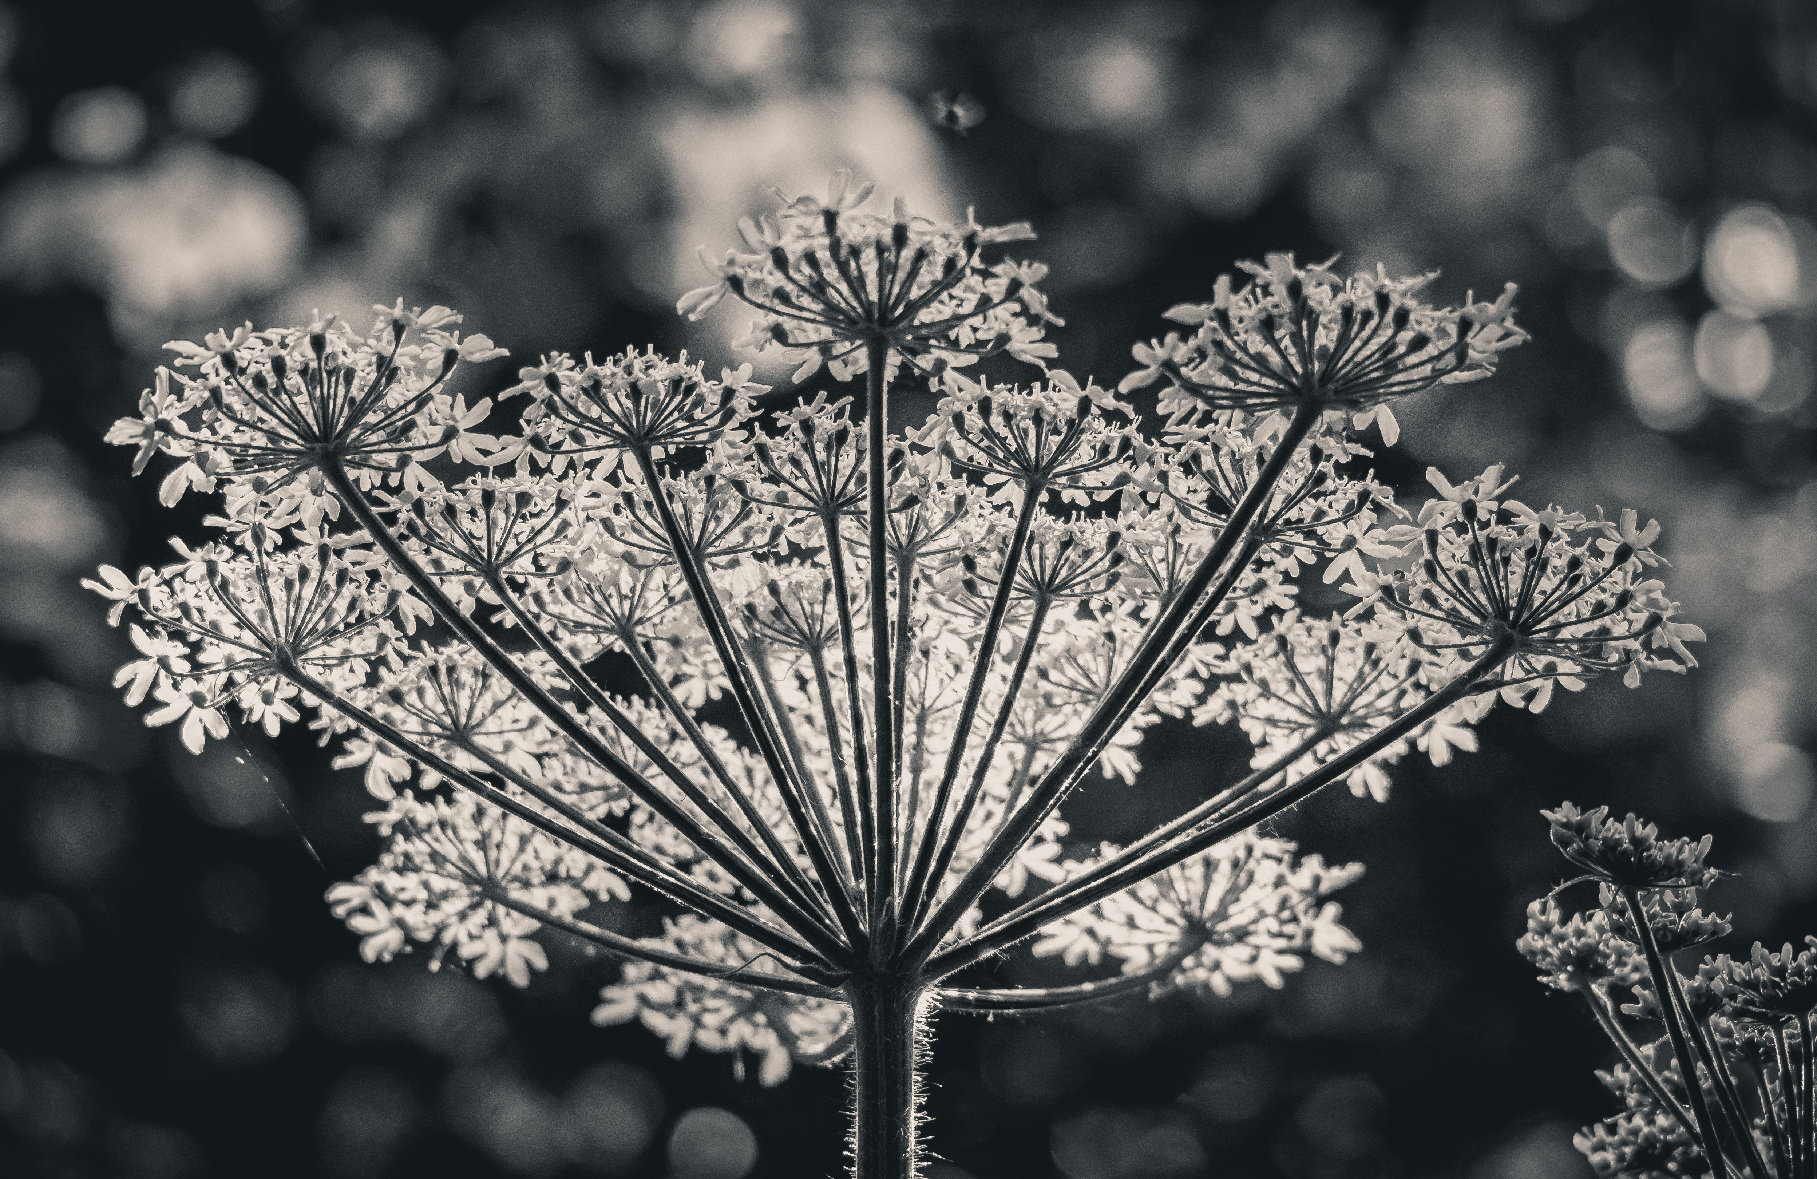 Forest's Crown. Nature Photography. By Stephen Geisel, Love-fi